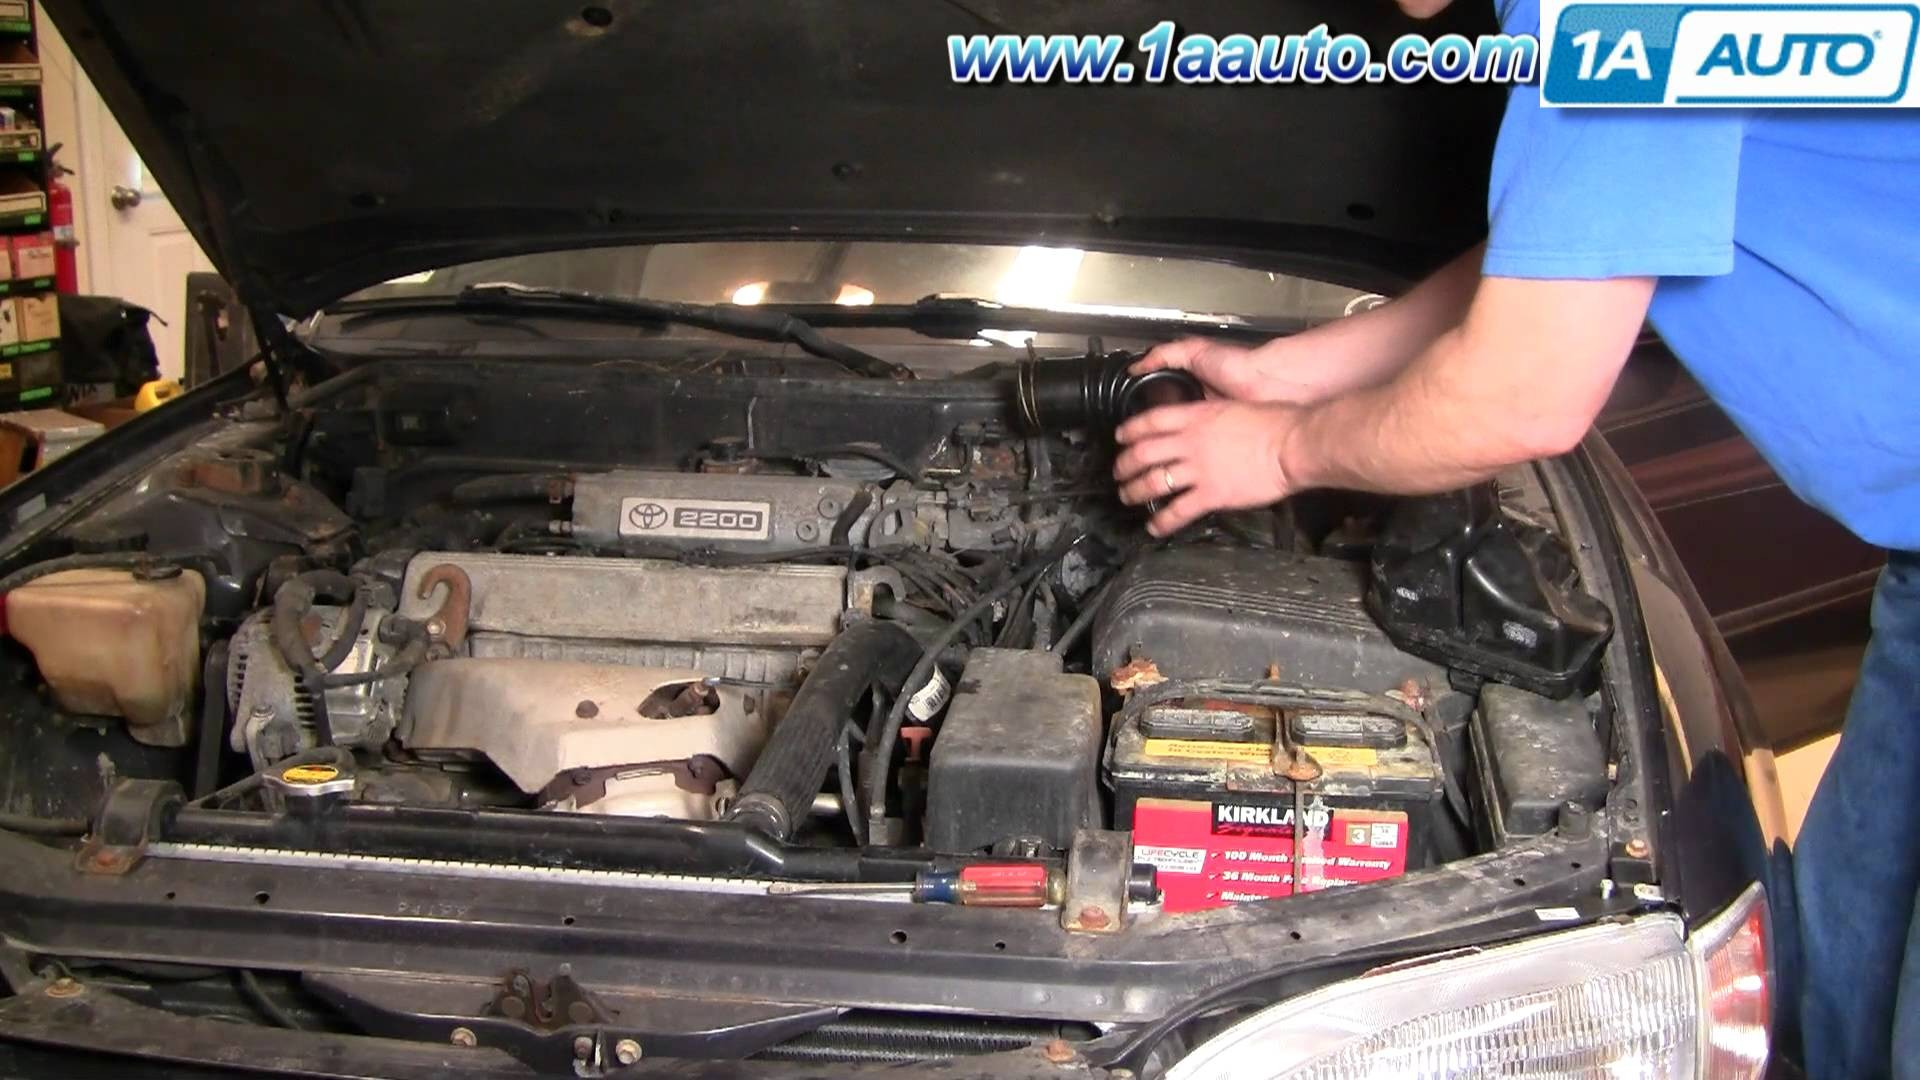 1999 toyota Camry 4 Cylinder Engine Diagram How to Install Replace Engine Air Intake Hose toyota Camry 2 2l 95 Of 1999 toyota Camry 4 Cylinder Engine Diagram